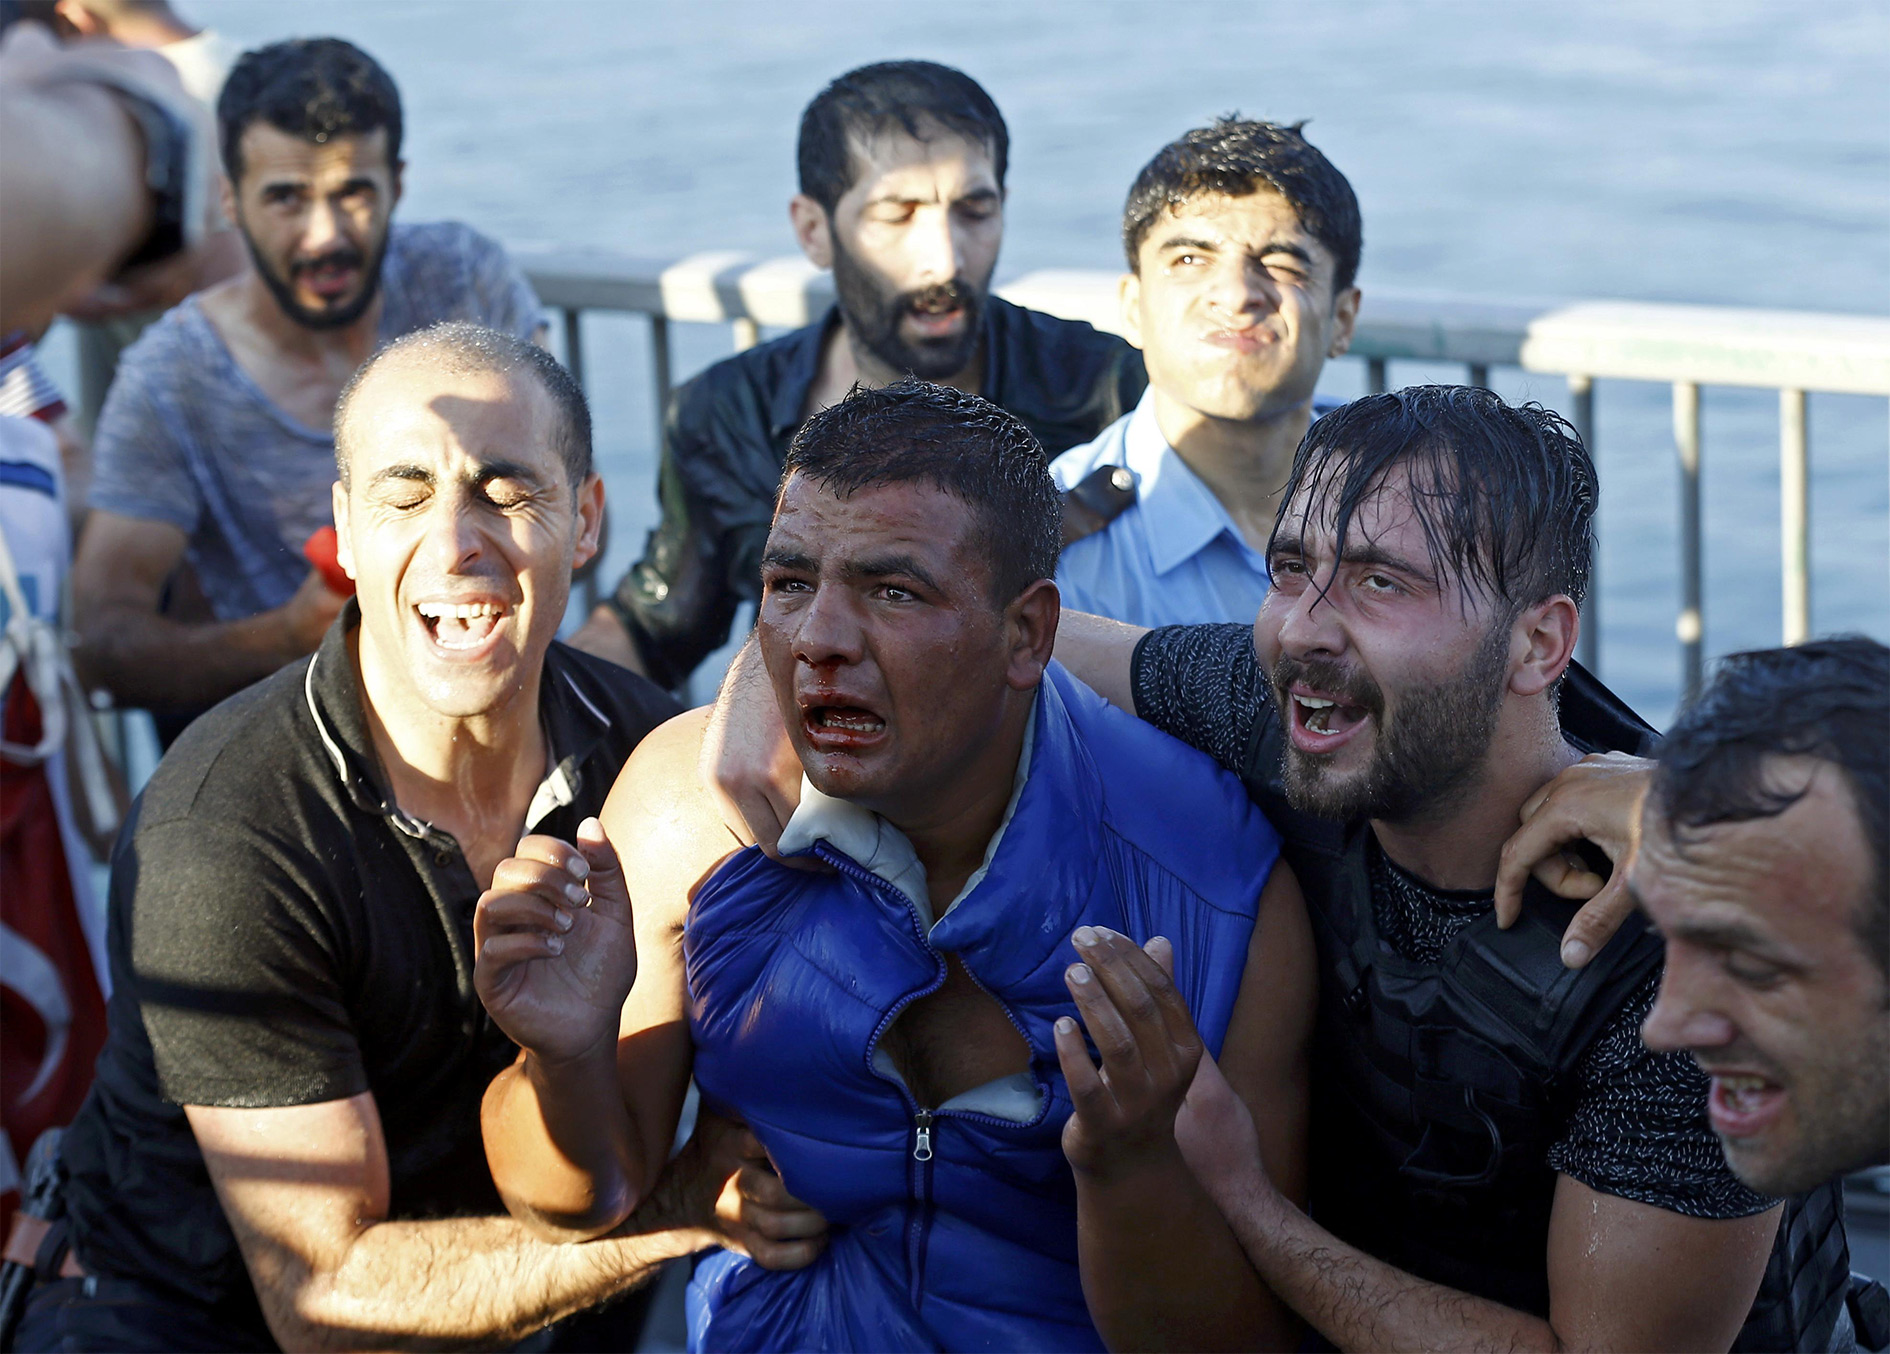 A soldier beaten by the mob (C) is protected by plain clothes policemen after troops involved in the coup surrendered on the Bosphorus Bridge in Istanbul, Turkey 16 July 2016.